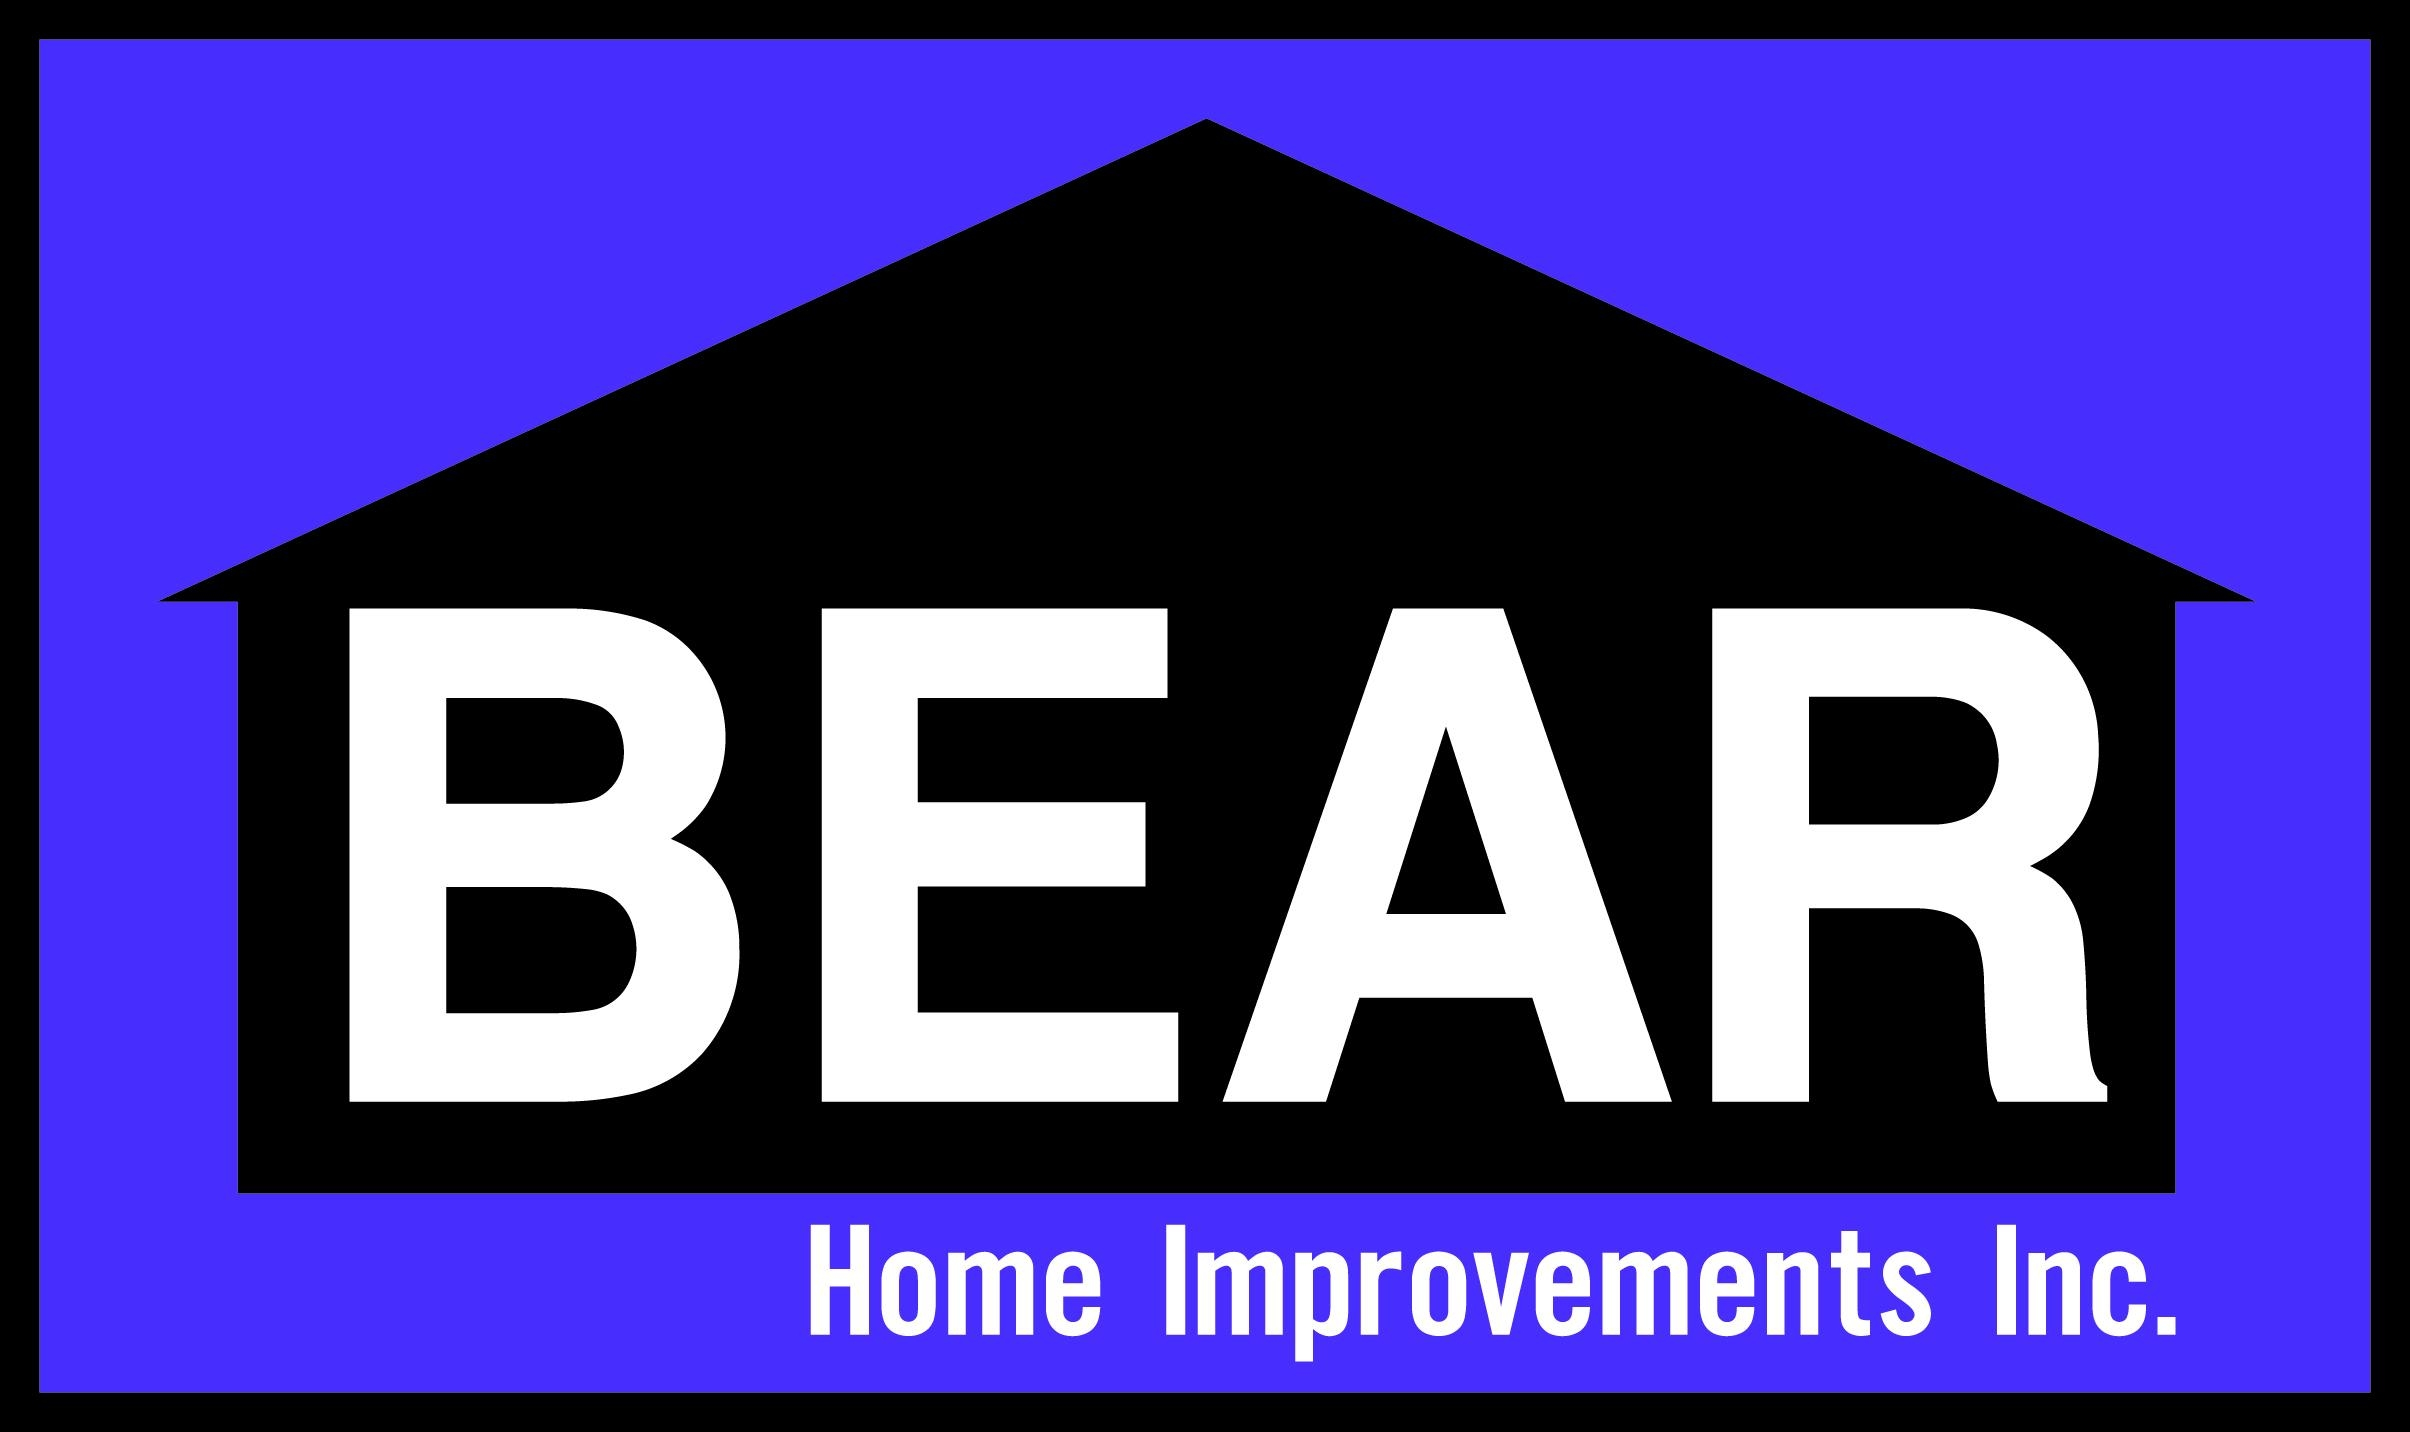 Bear Home Improvements, Inc.